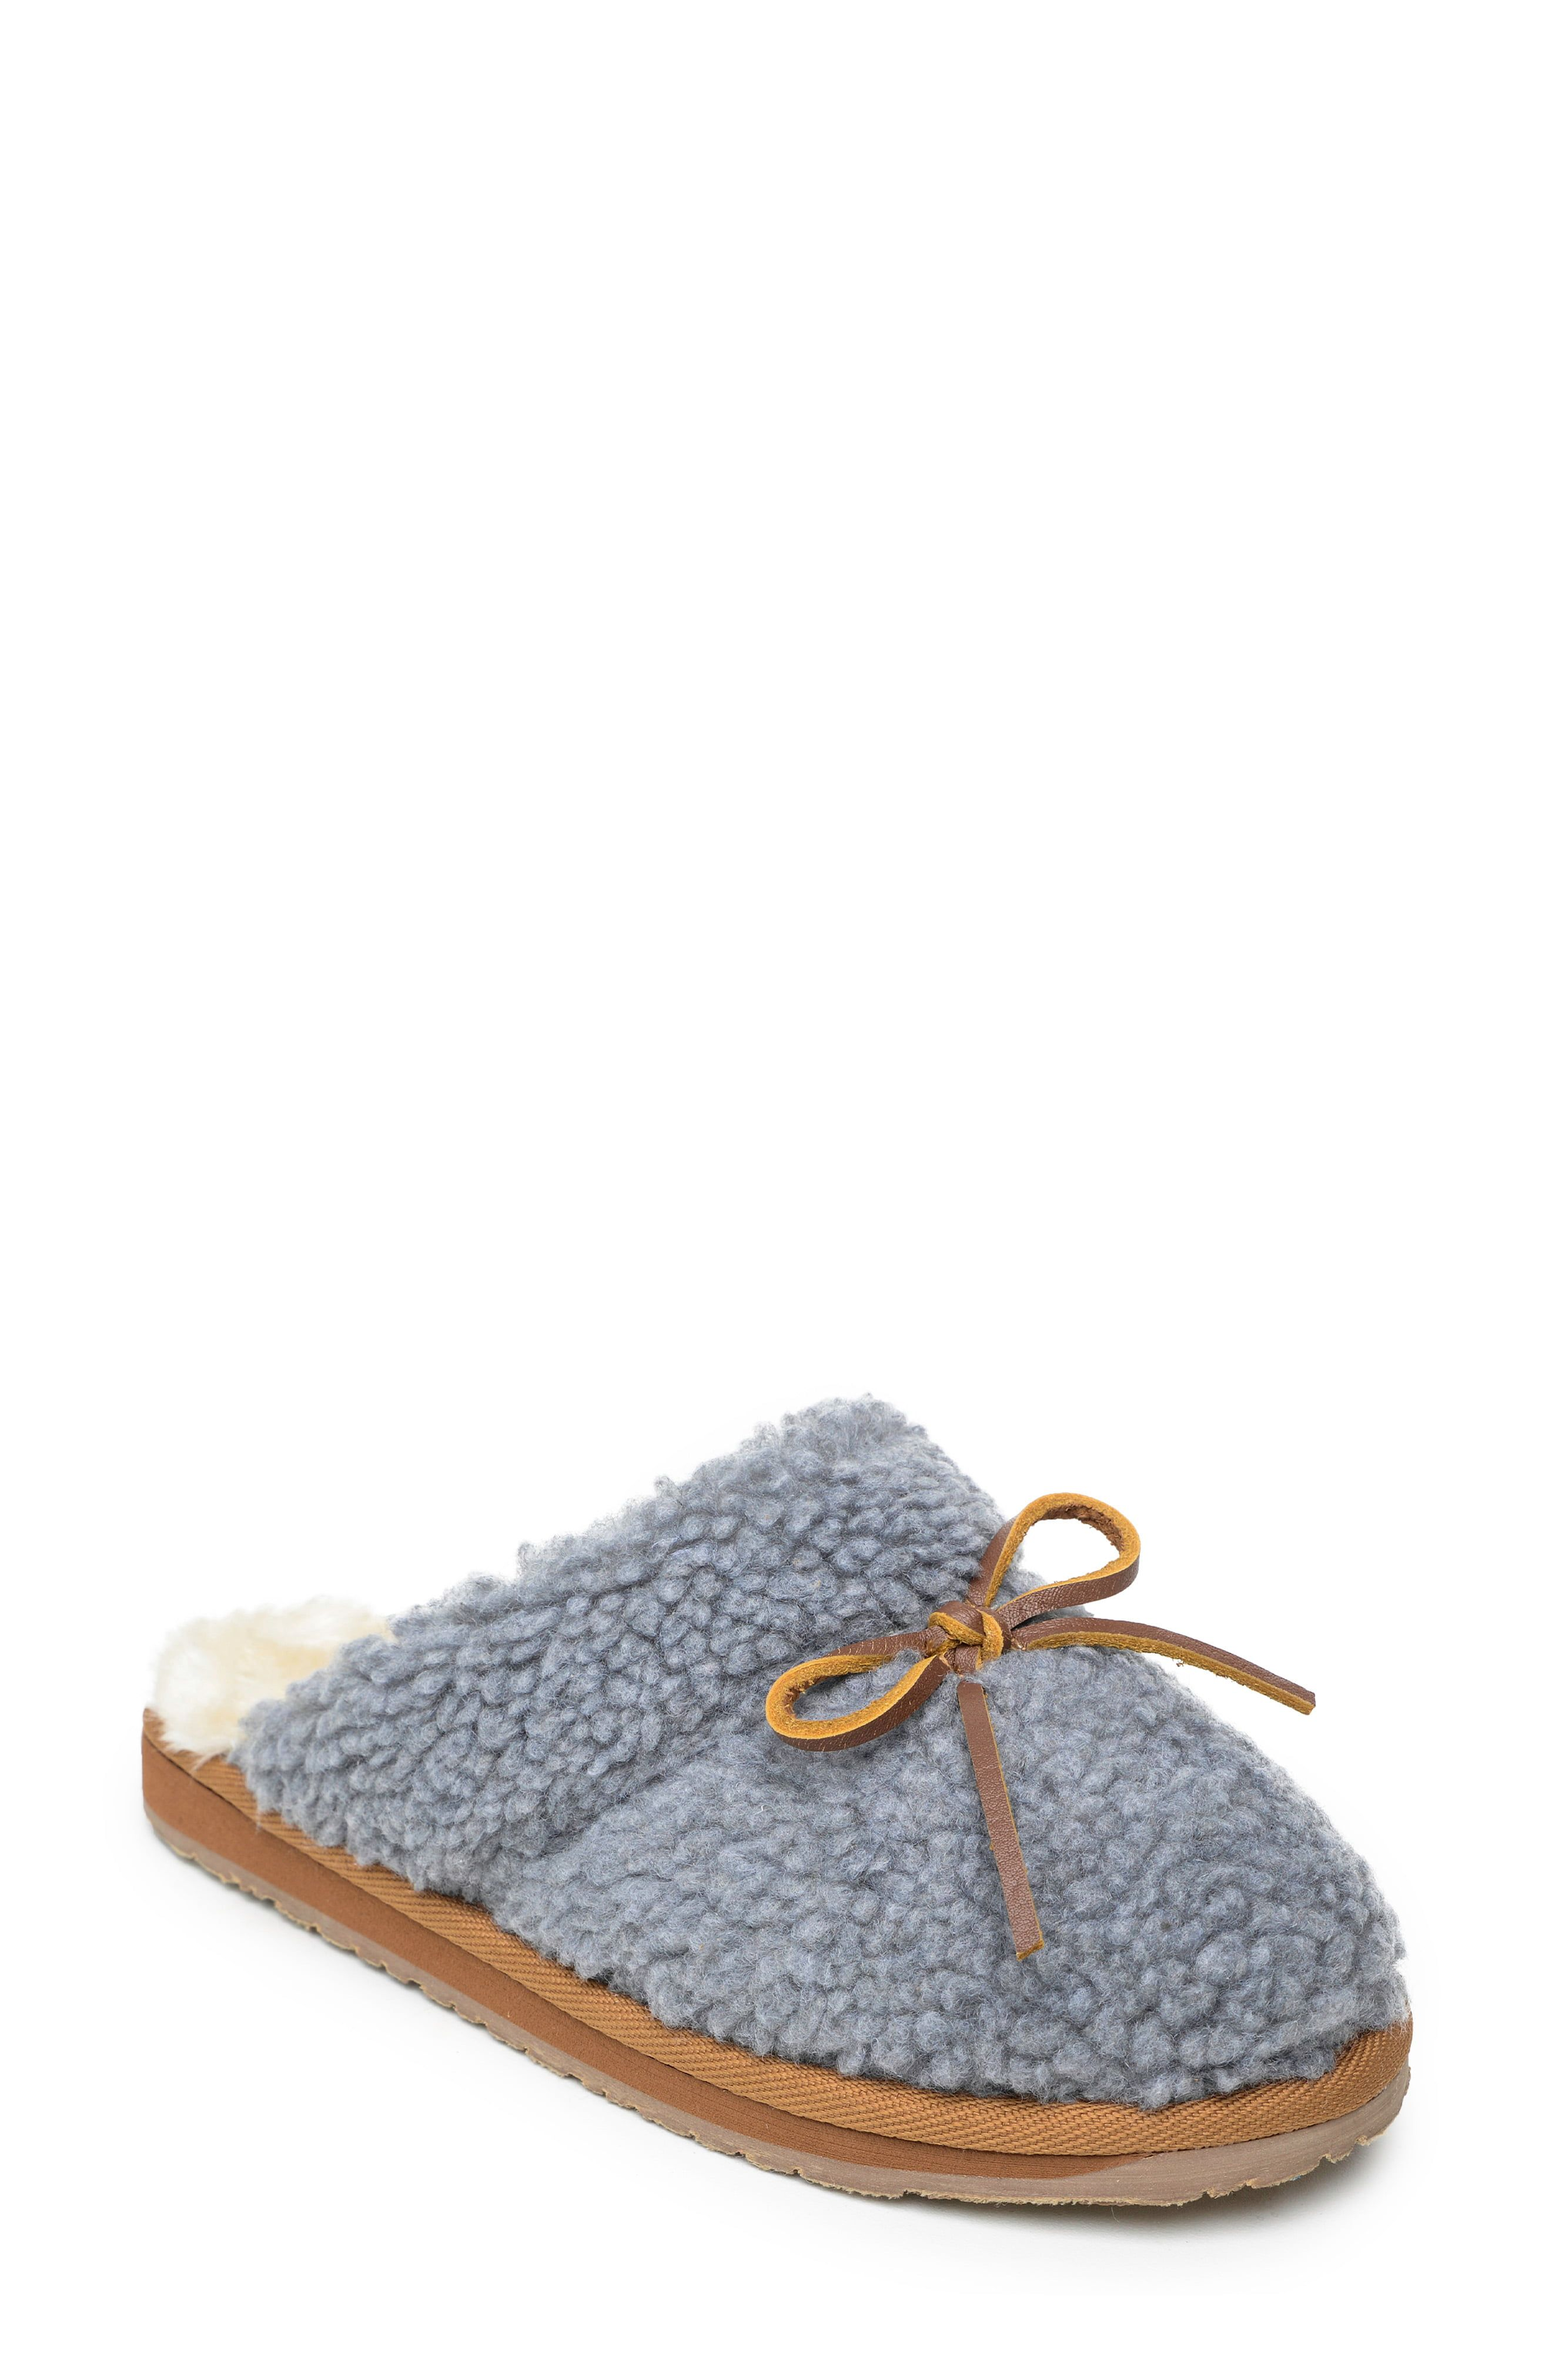 Treat yourself-or at least your feet-with these bow-topped slippers in comfy, cozy faux fur you'll love slipping into after a long day. Style Name:Minnetonka Flurry Scuff Faux Fur Slipper (Women). Style Number: 6044287. Available in stores.